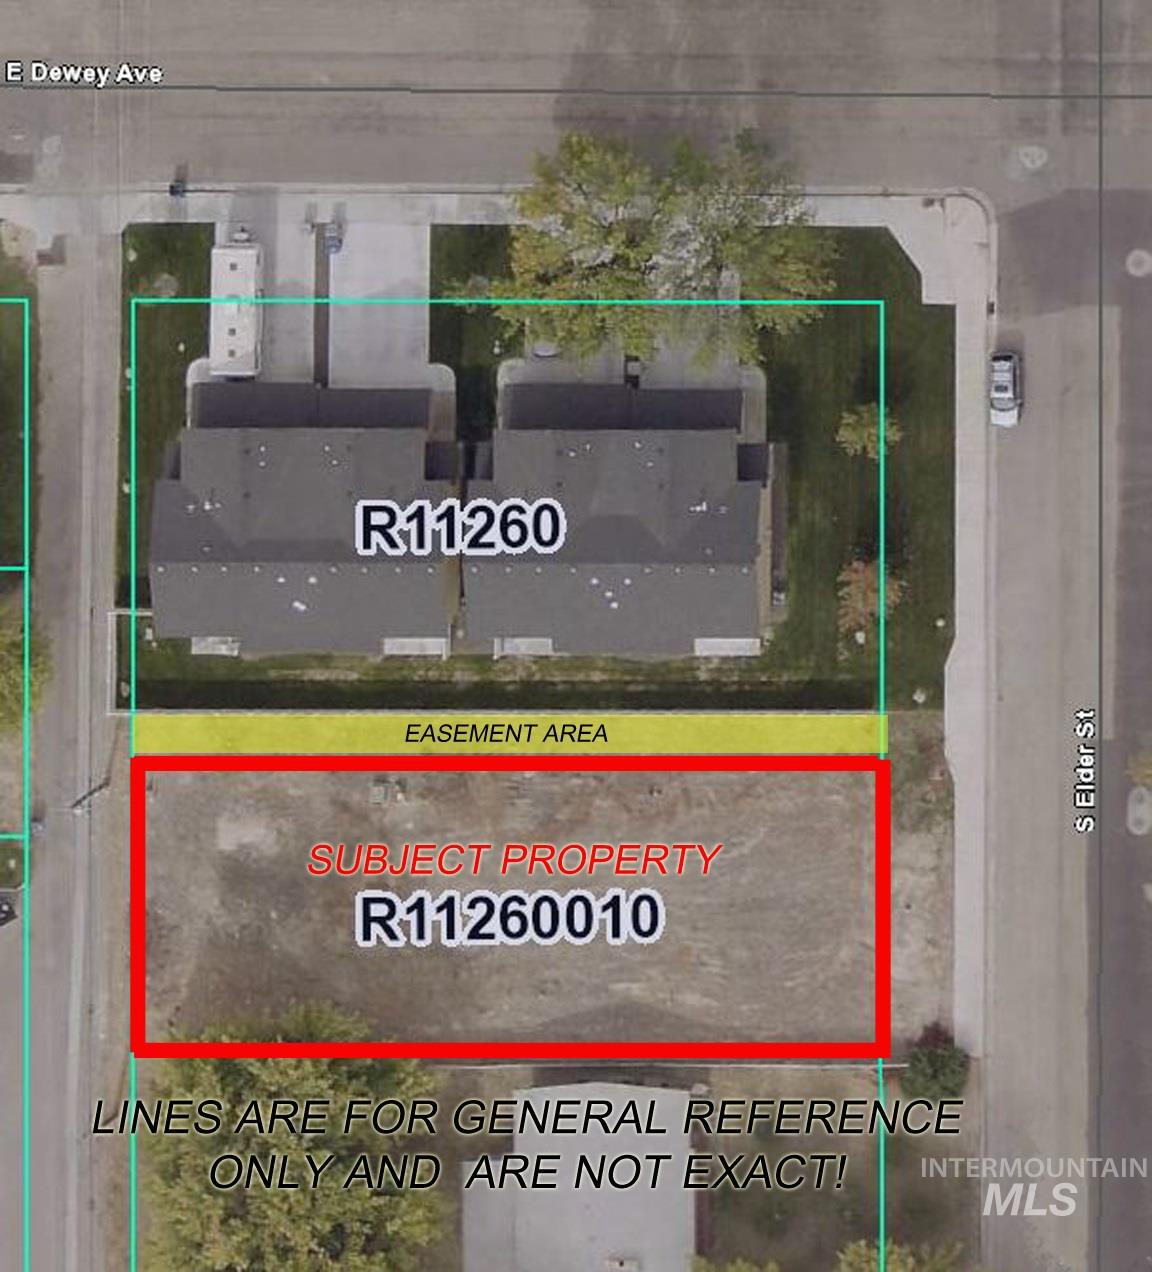 TBD S Elder Street, Nampa, Idaho 83686, Land For Sale, Price $154,900, 98791188